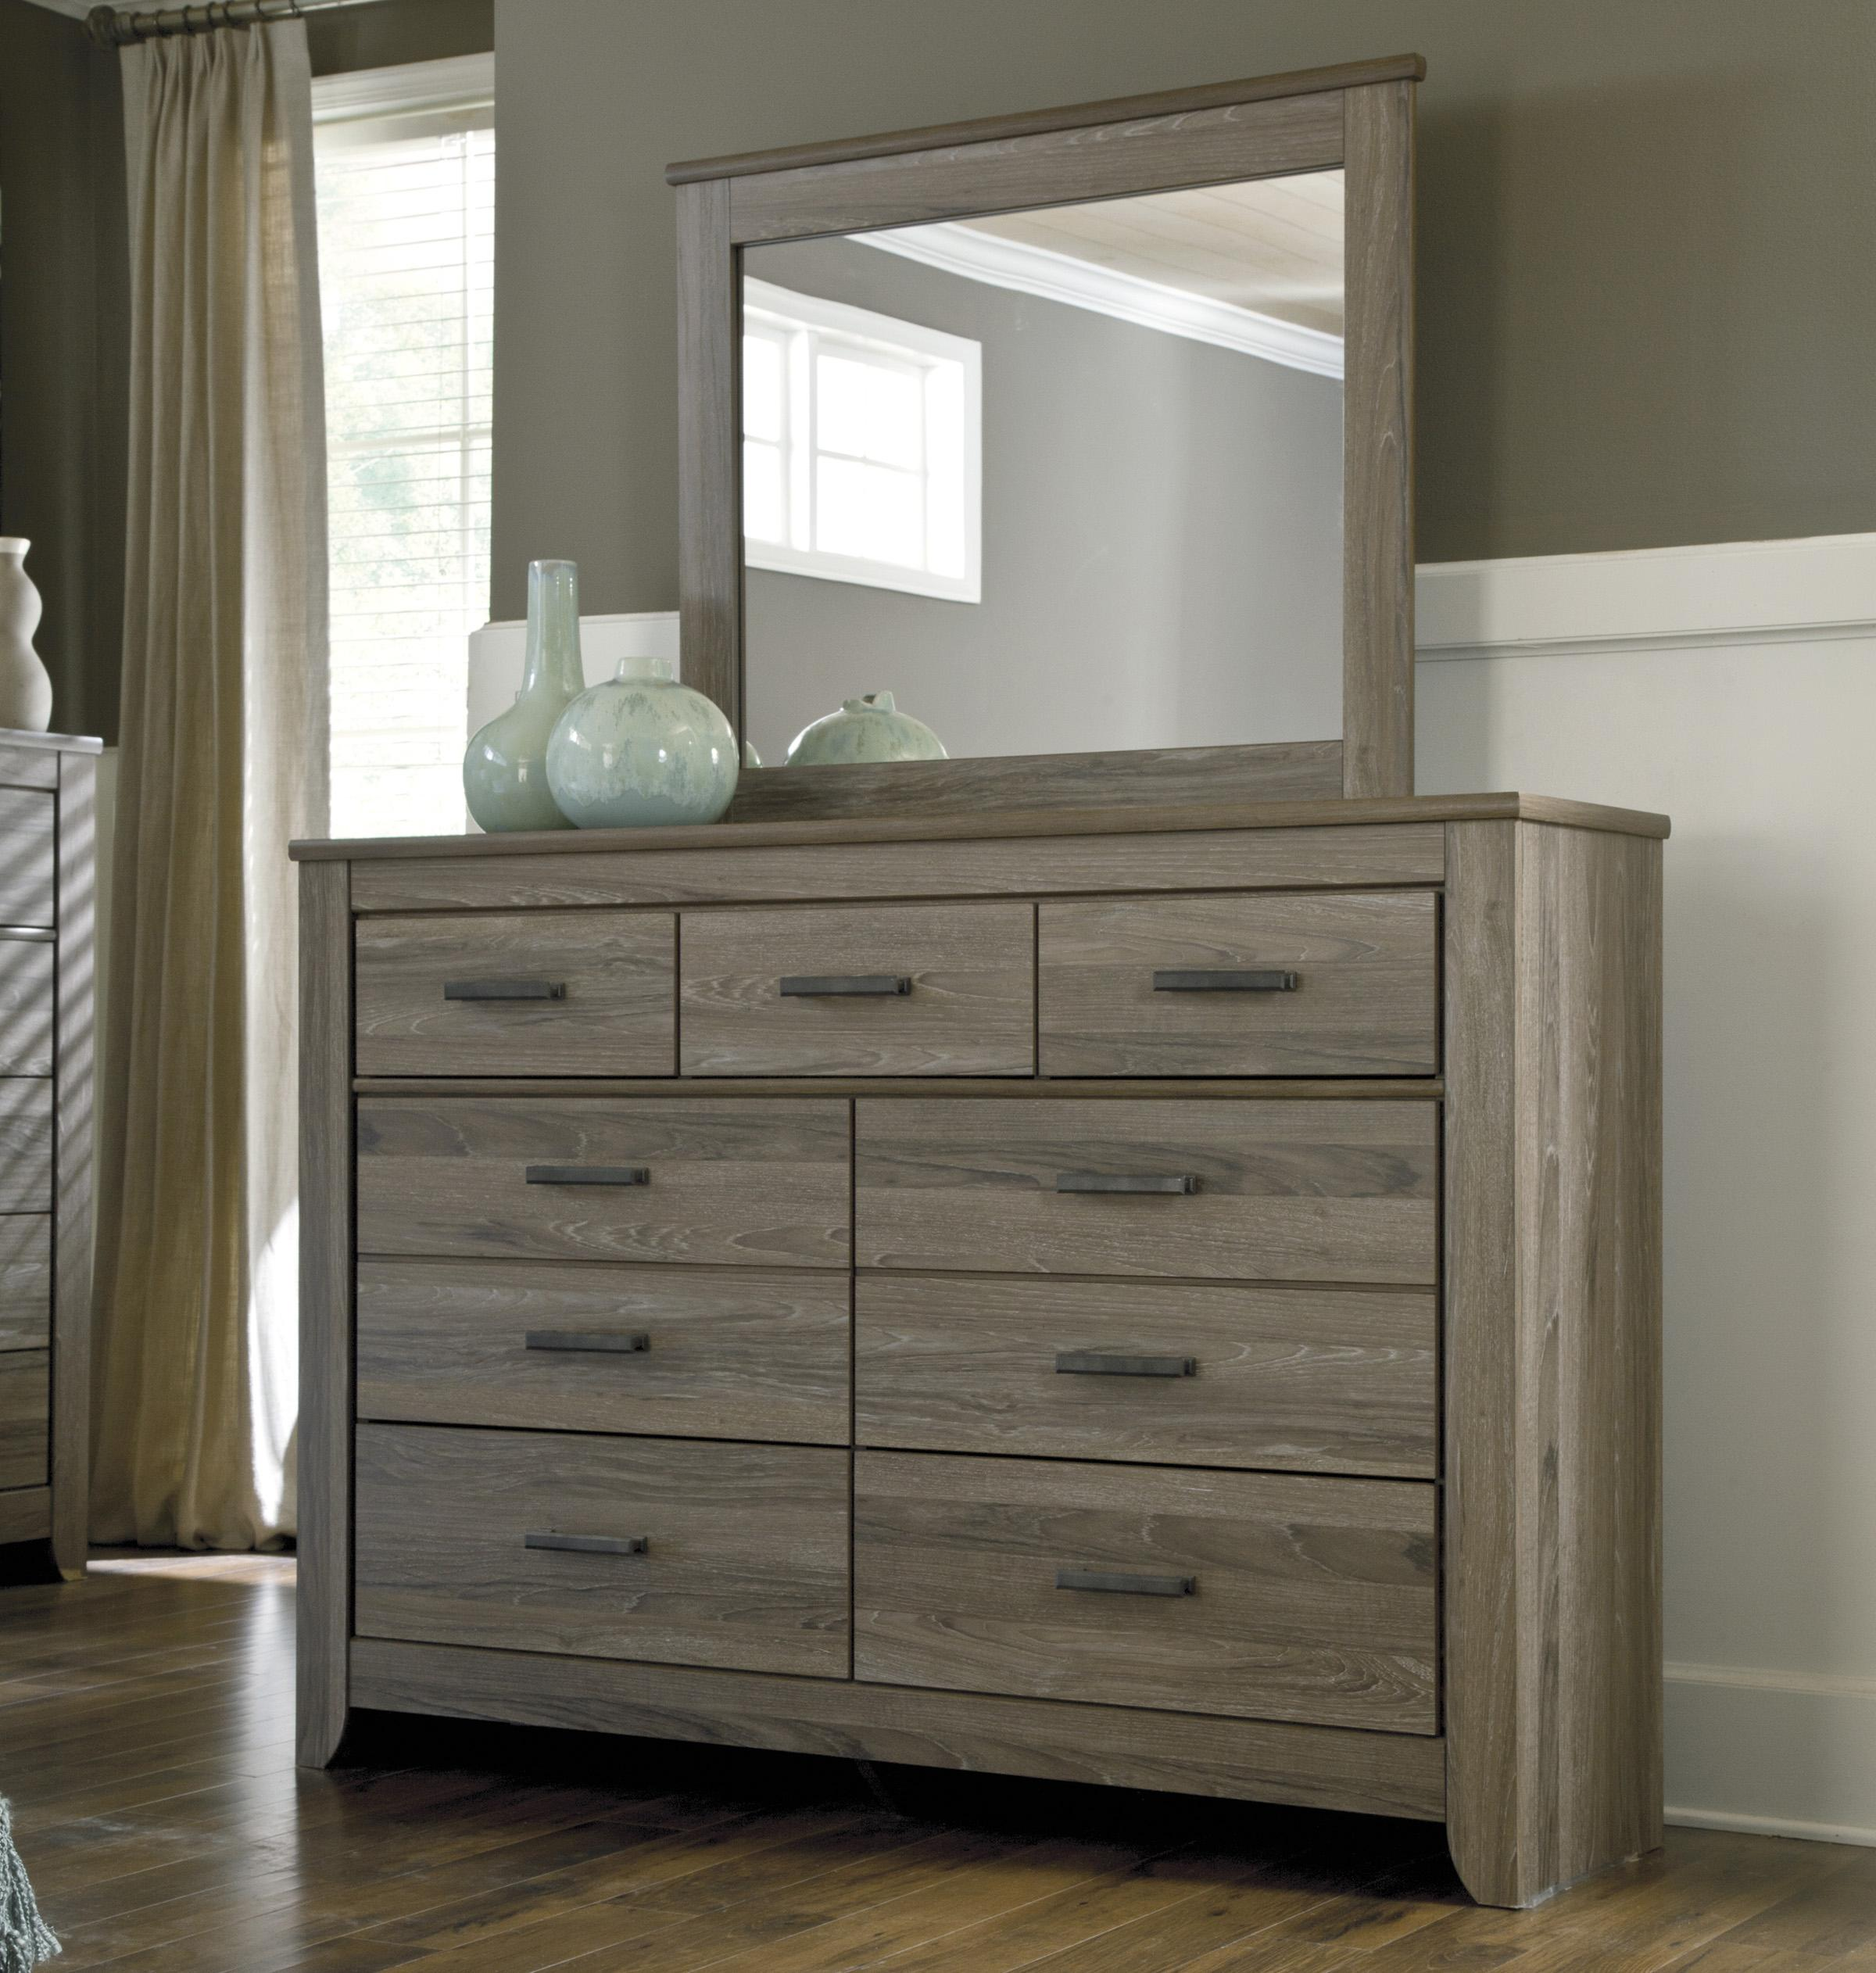 design signature landscape weeki bedroom by mirror contemporary drawer set item collections dressers wayside dresser and ashley furniture bhd